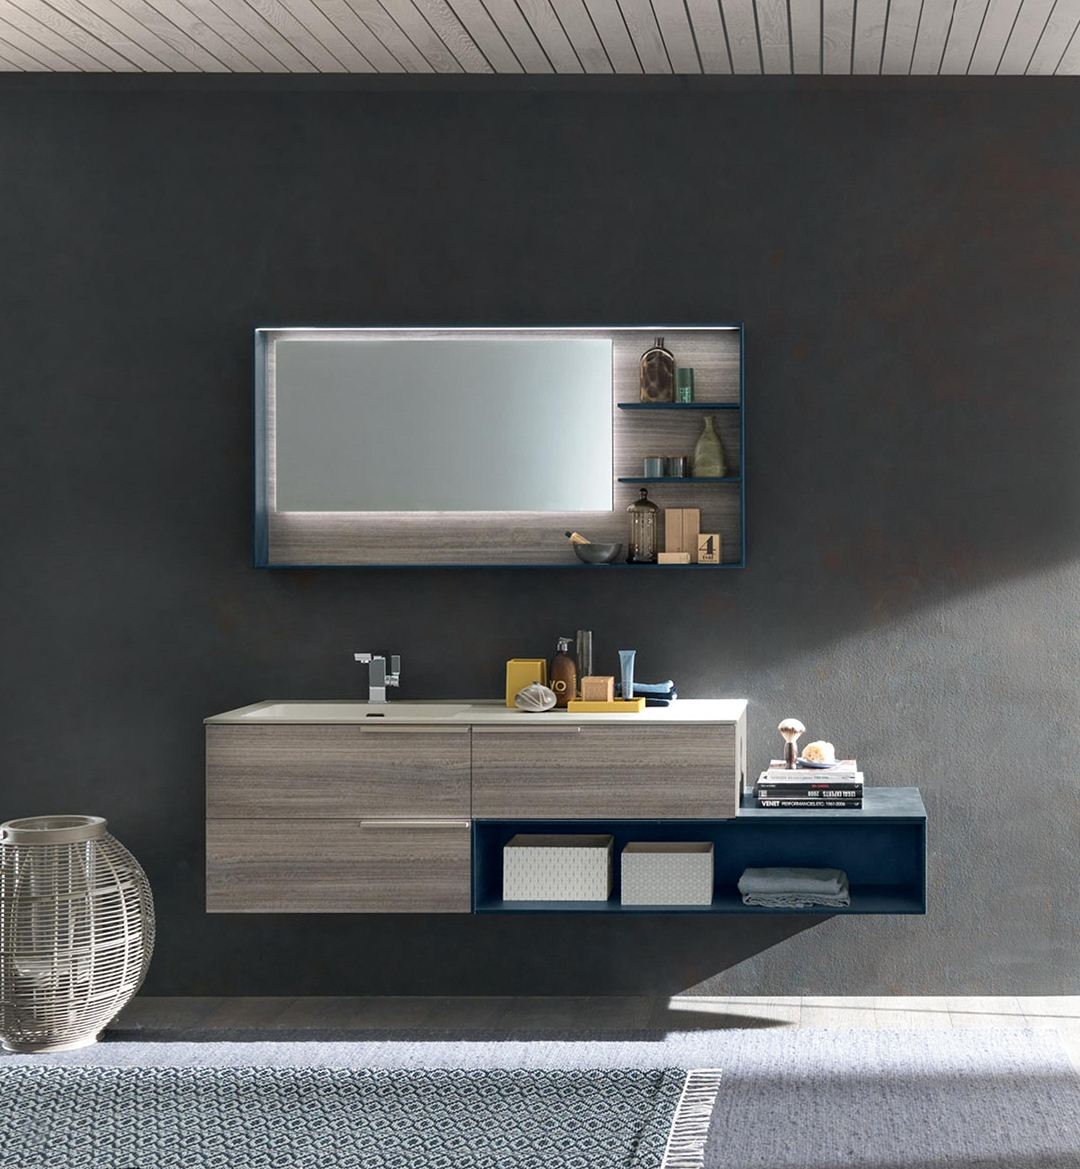 Mobili bagno on line scontati top outlet arredo bagno for Mobili online scontati